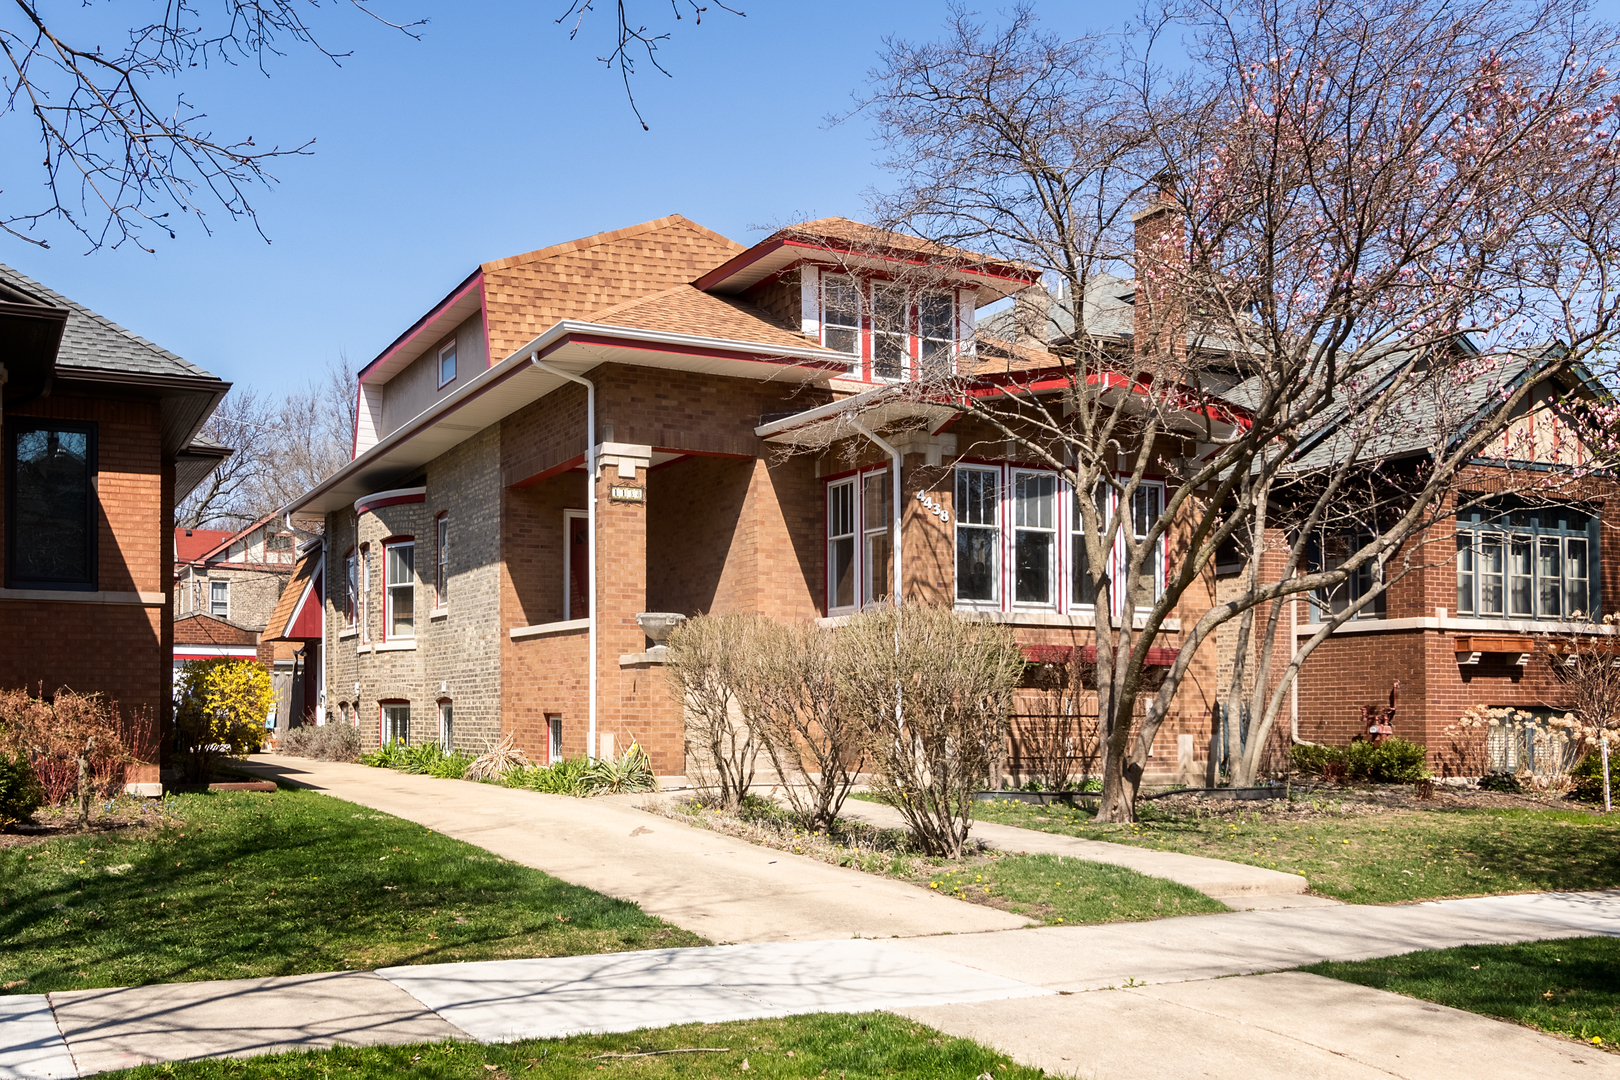 4438 NORTH FRANCISCO AVENUE, CHICAGO, IL 60625